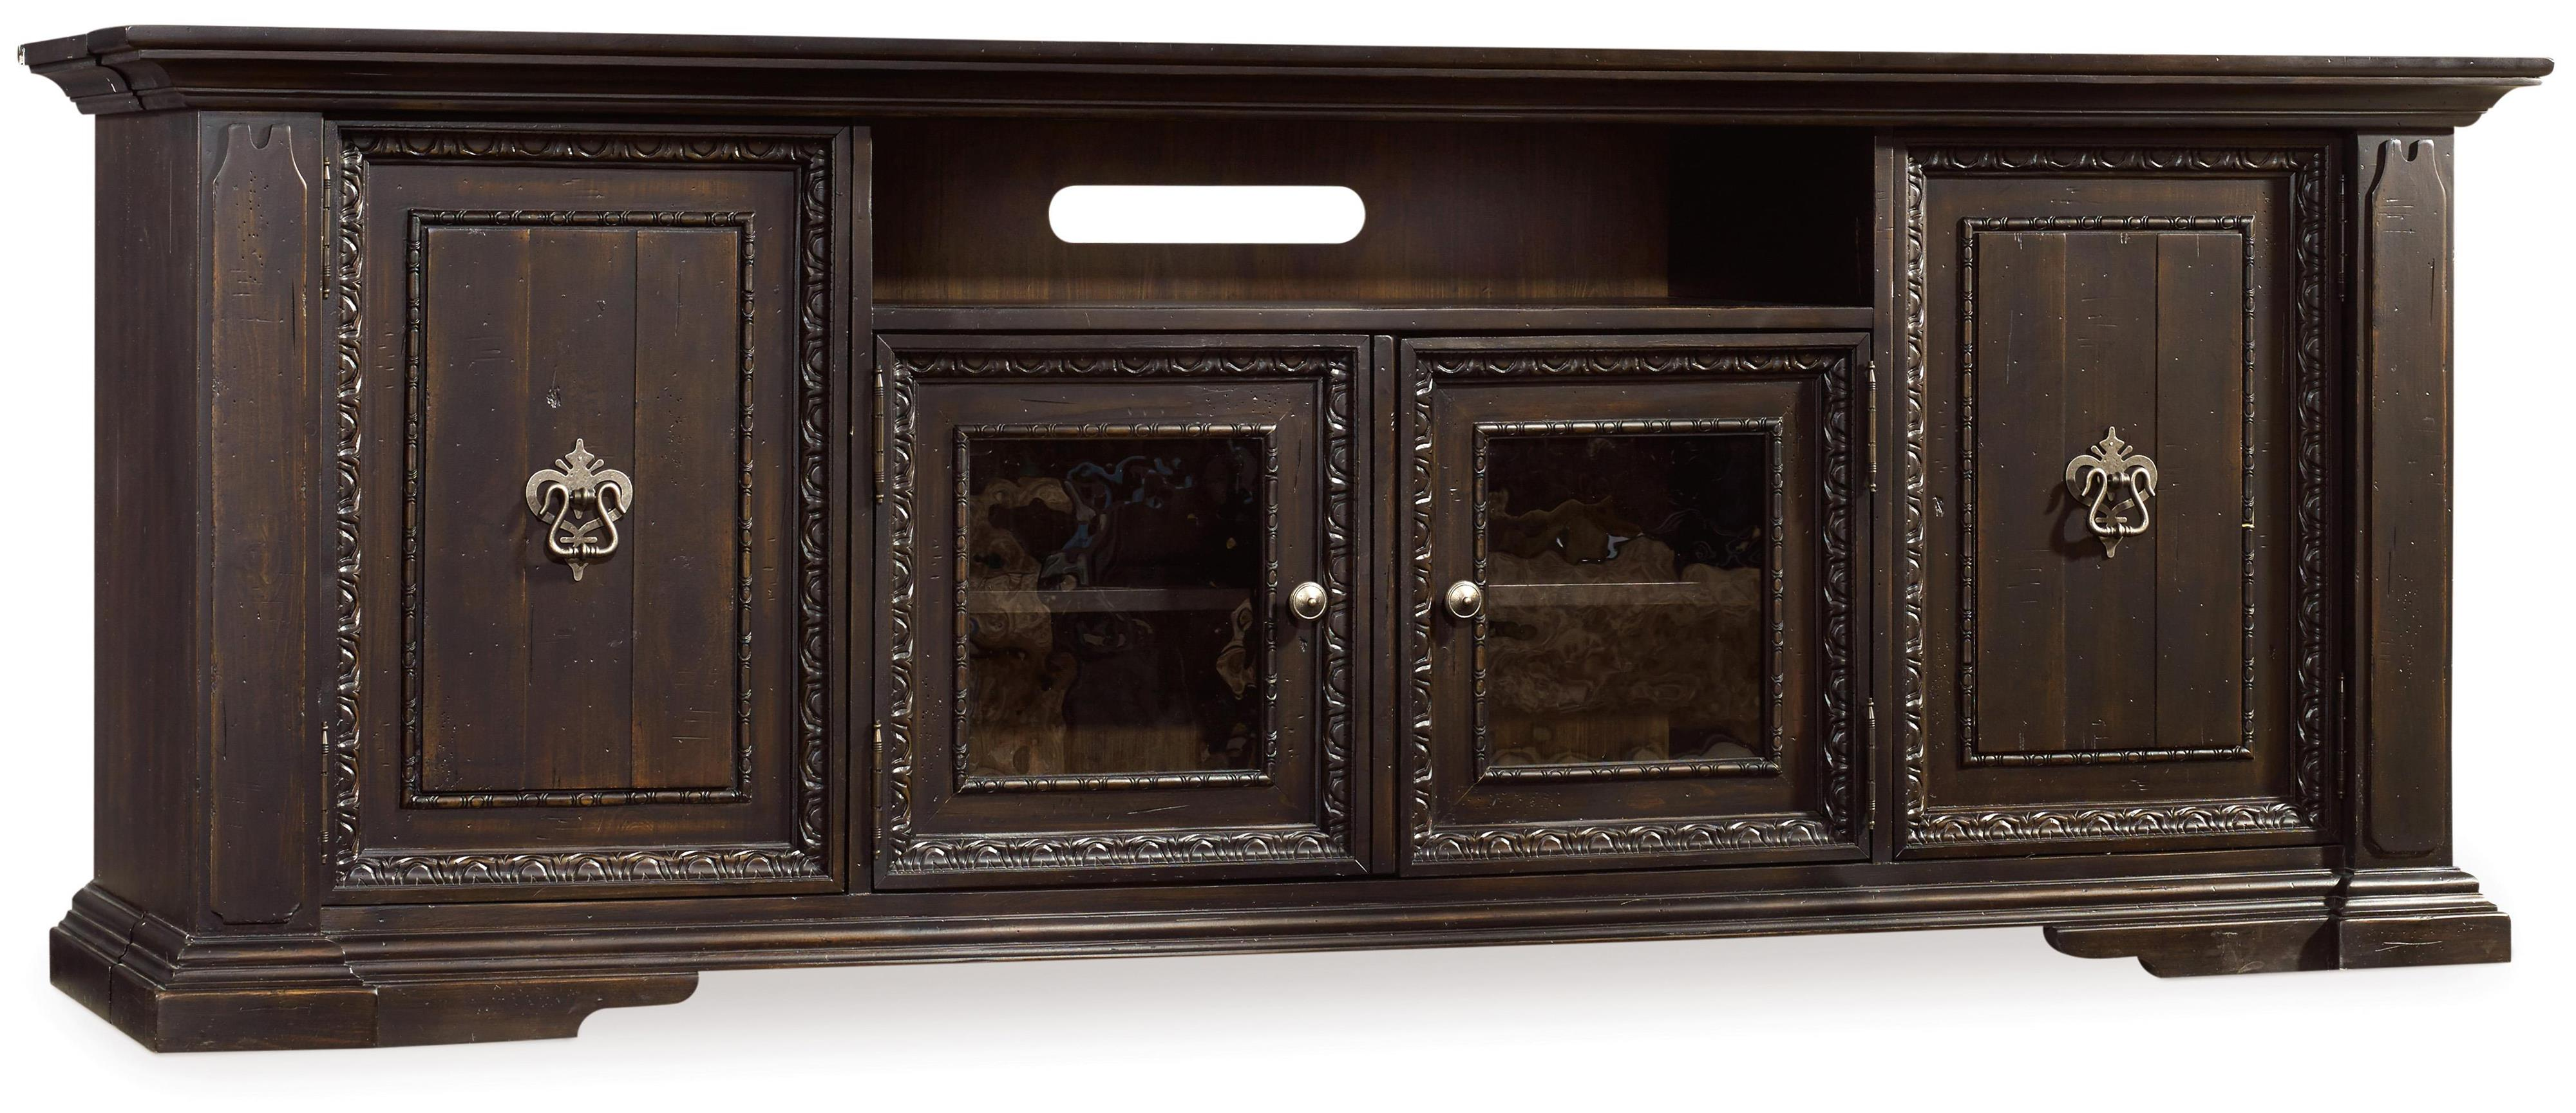 Hooker Furniture Treviso Entertainment Console - Item Number: 5374-70485